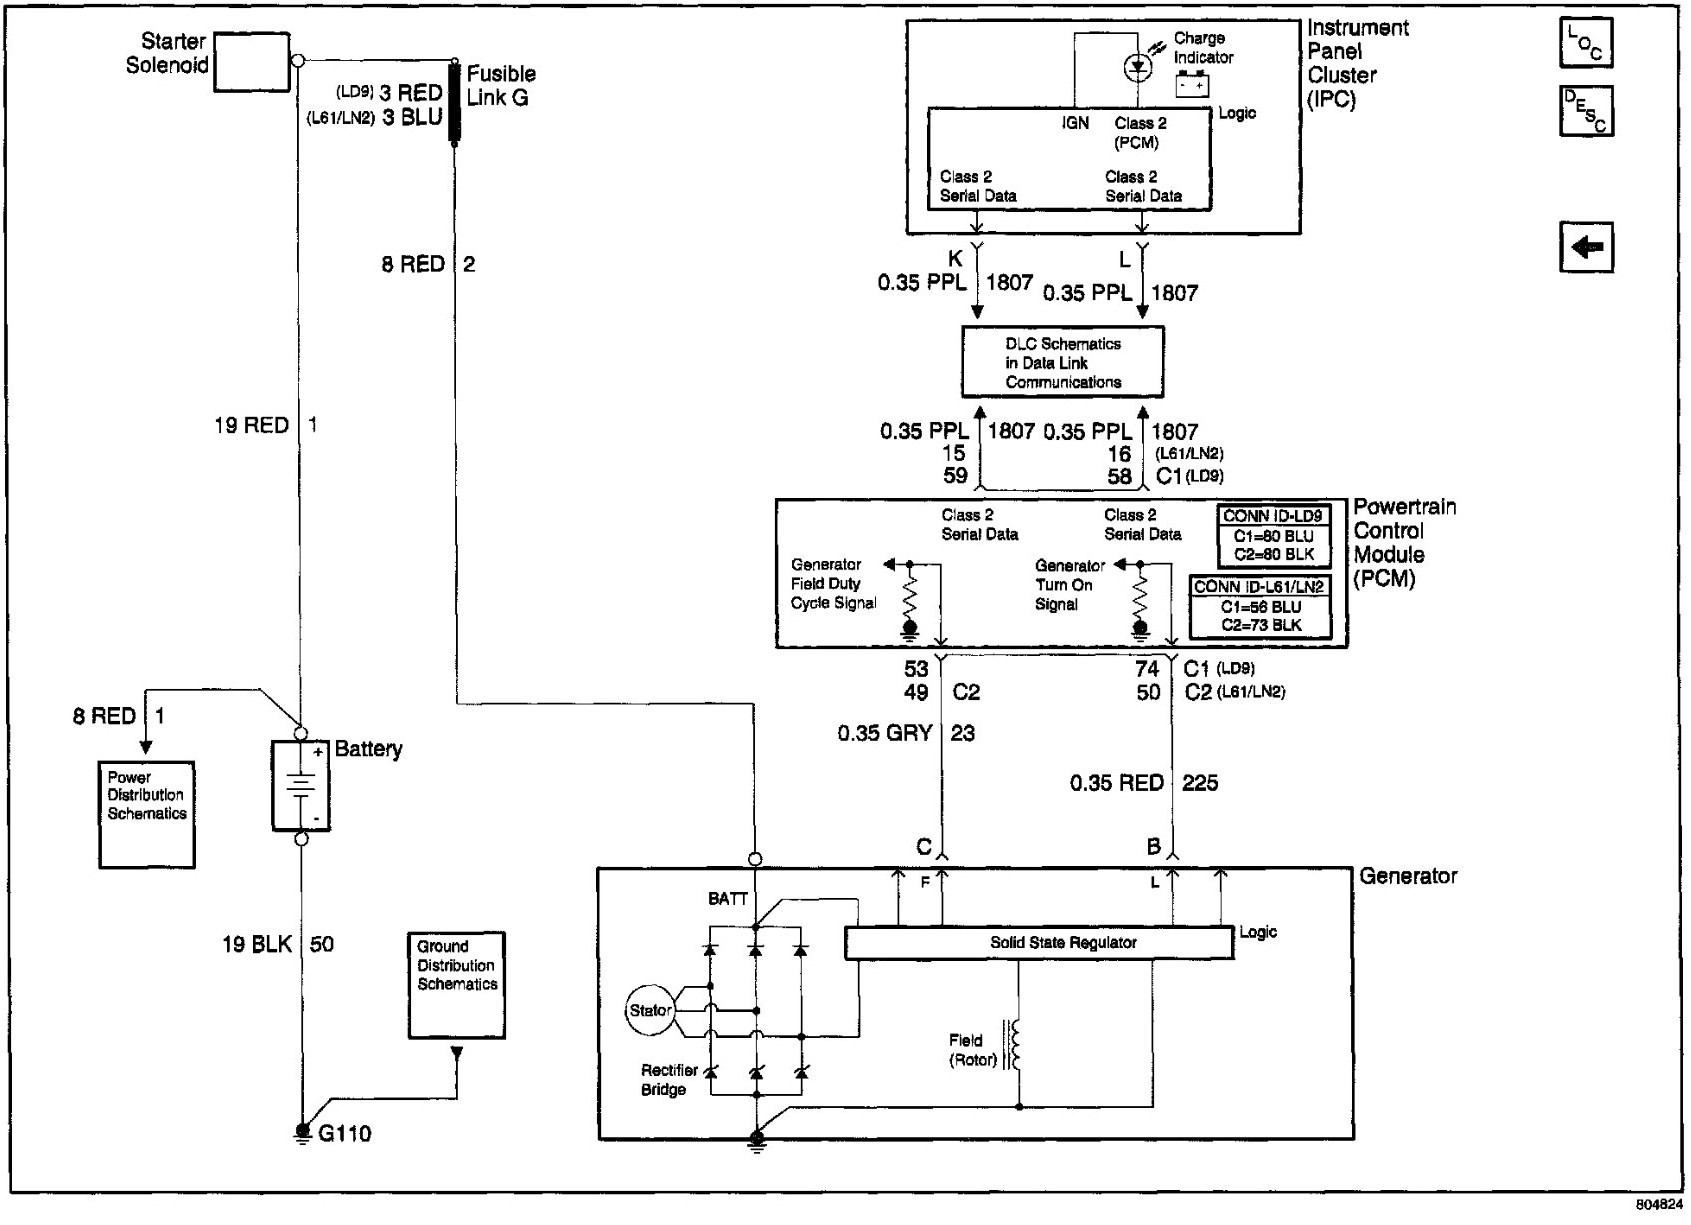 Raven Meters Wiring Diagram - General Wiring Diagrams on